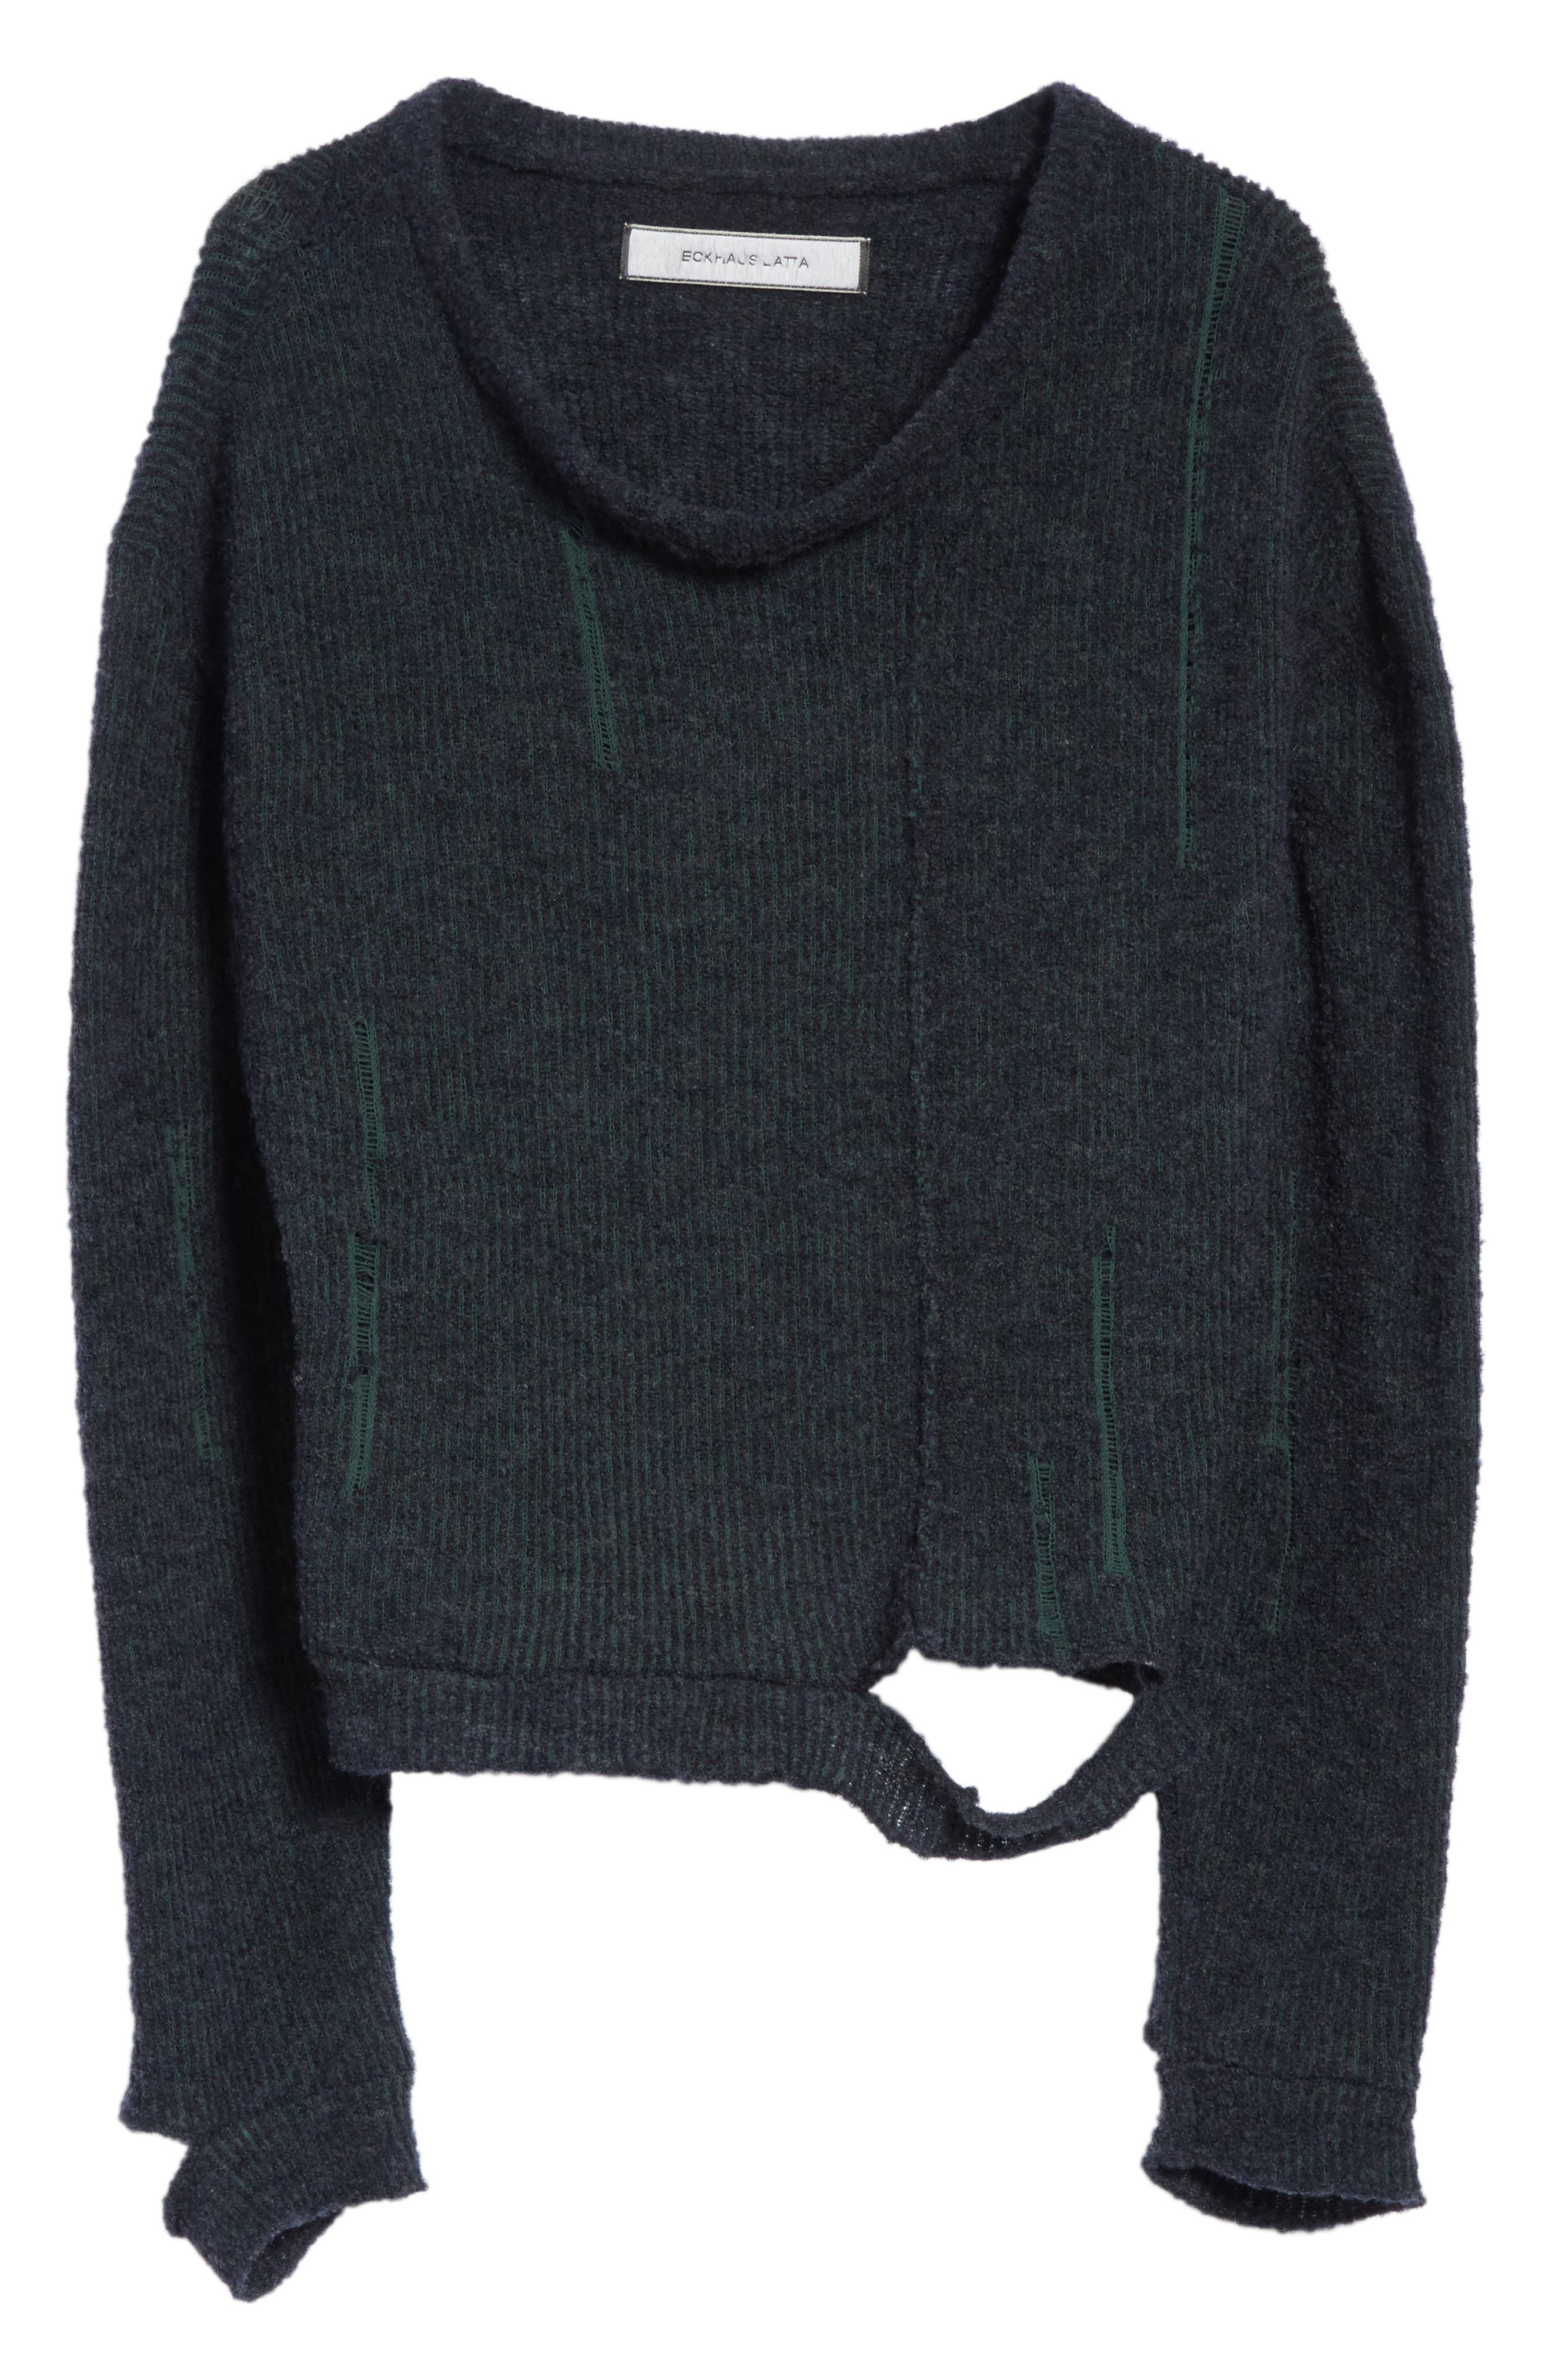 Wiggly Road Sweater,                             Alternate thumbnail 6, color,                             Navy